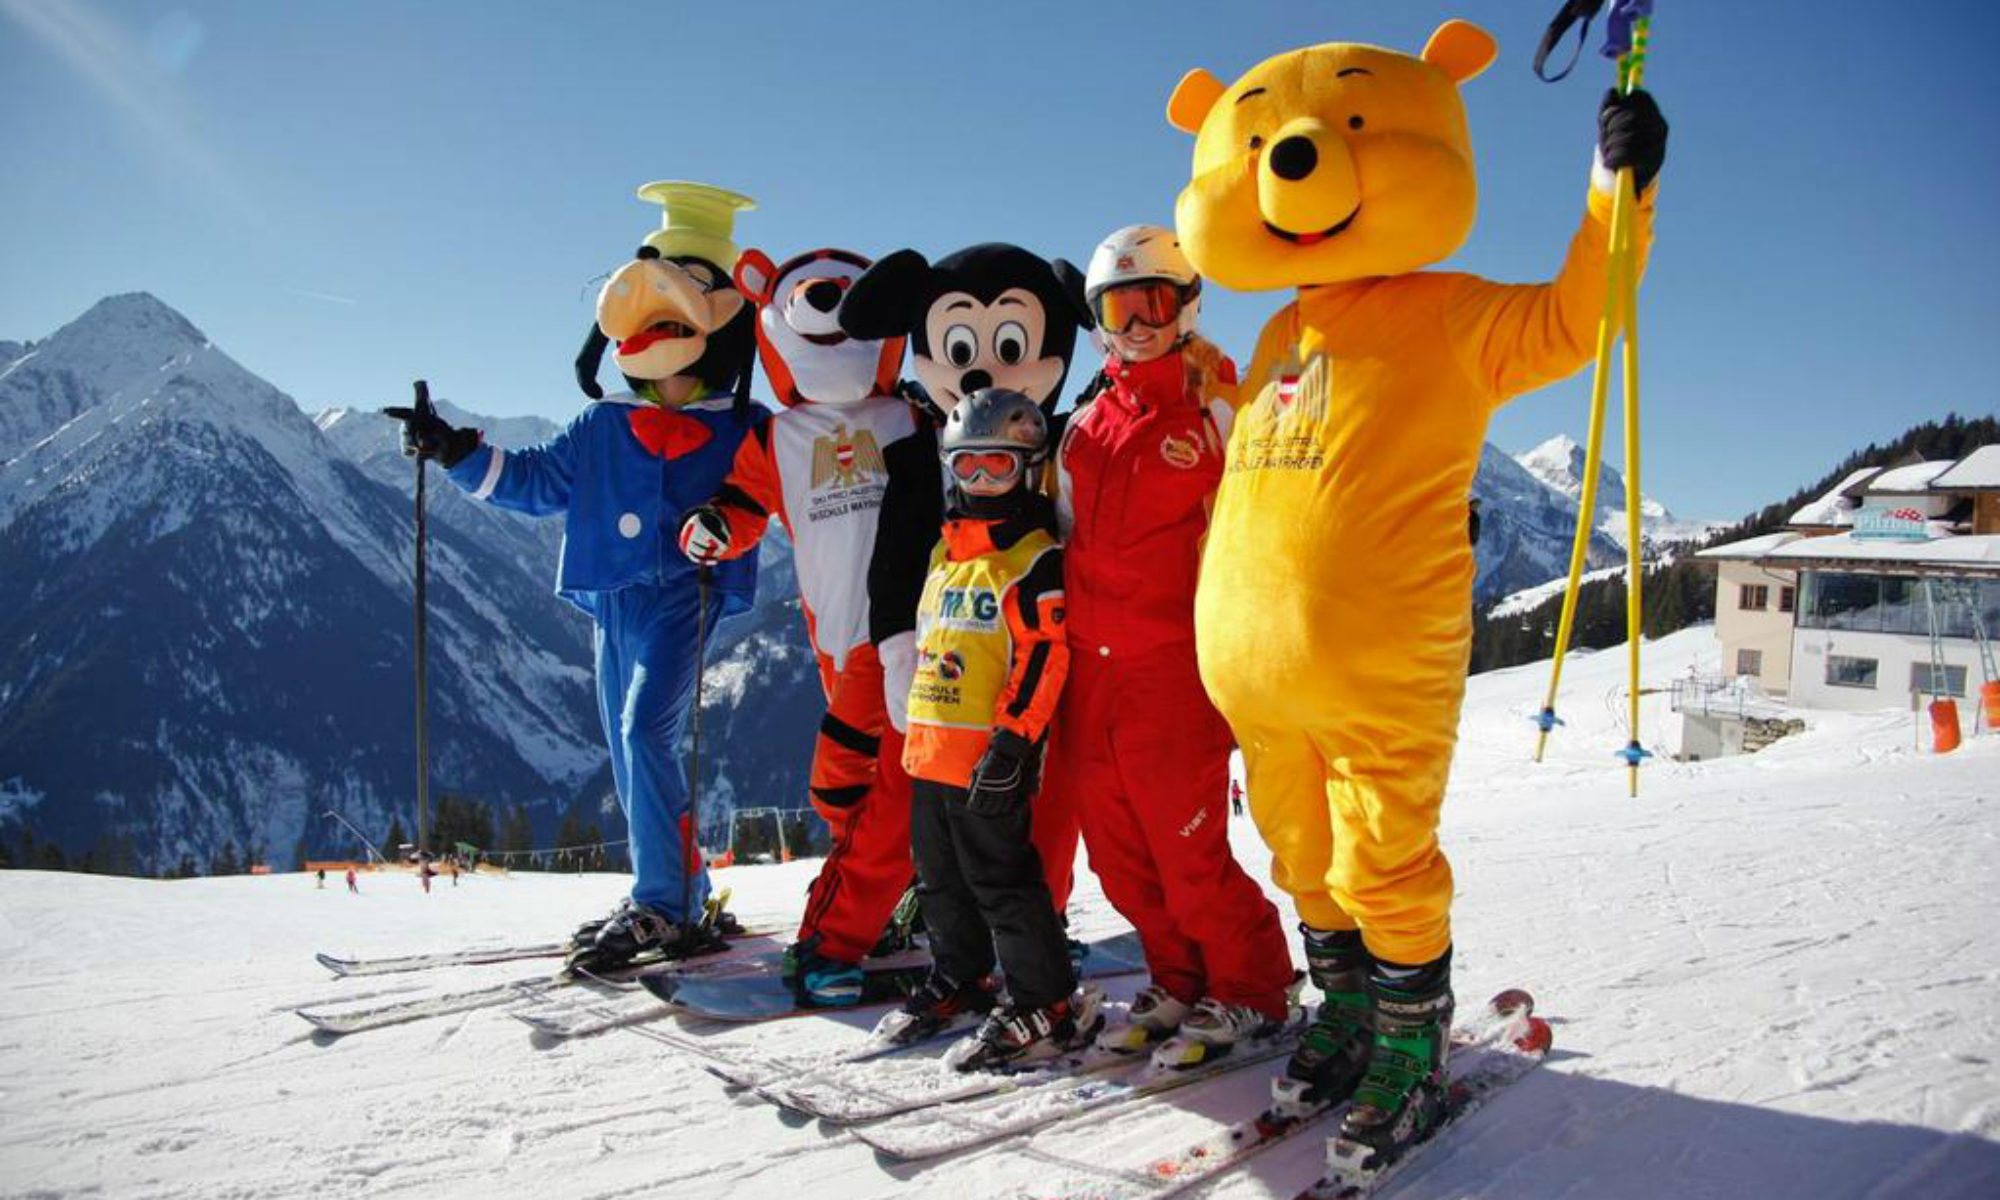 The mascots of Mayrhofen's ski schools with a ski instructor and child.